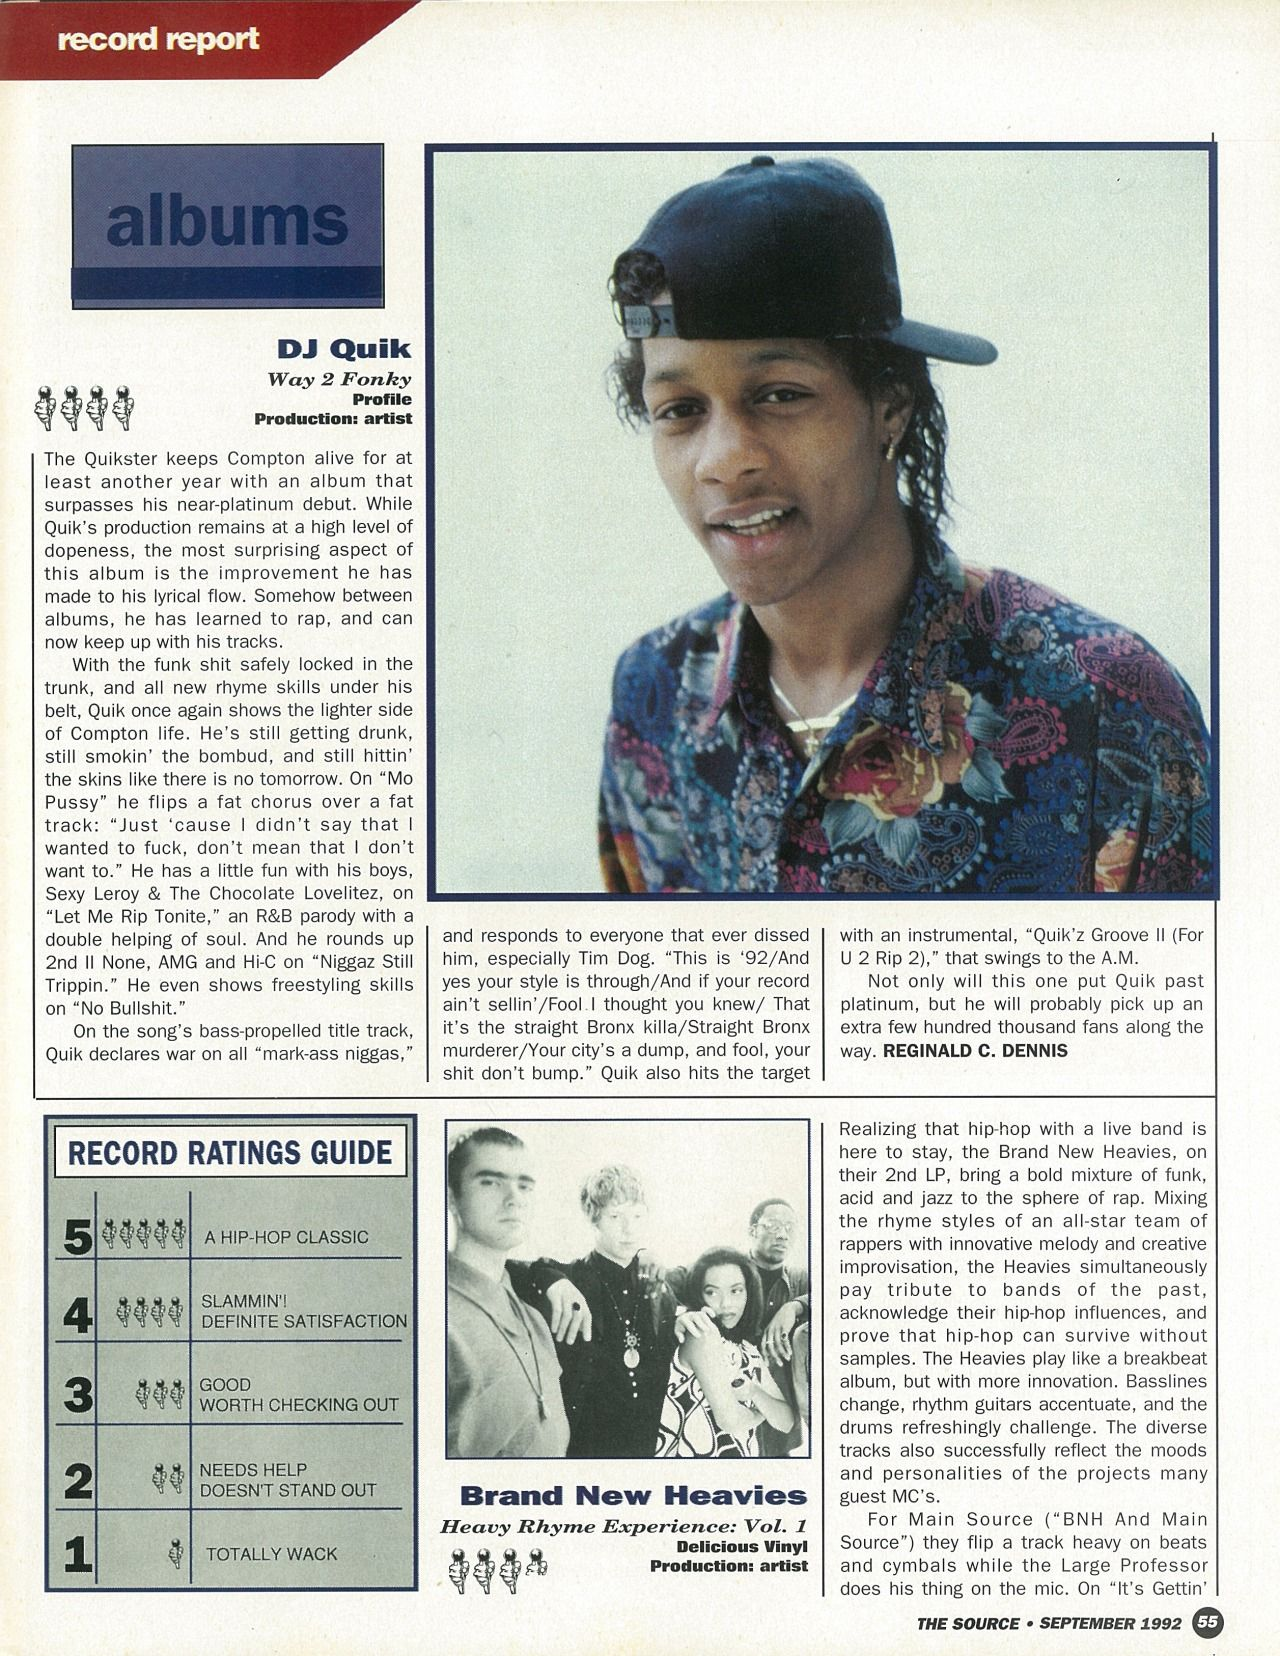 The Source Magazine, Issue #36, September 1992  Record Report